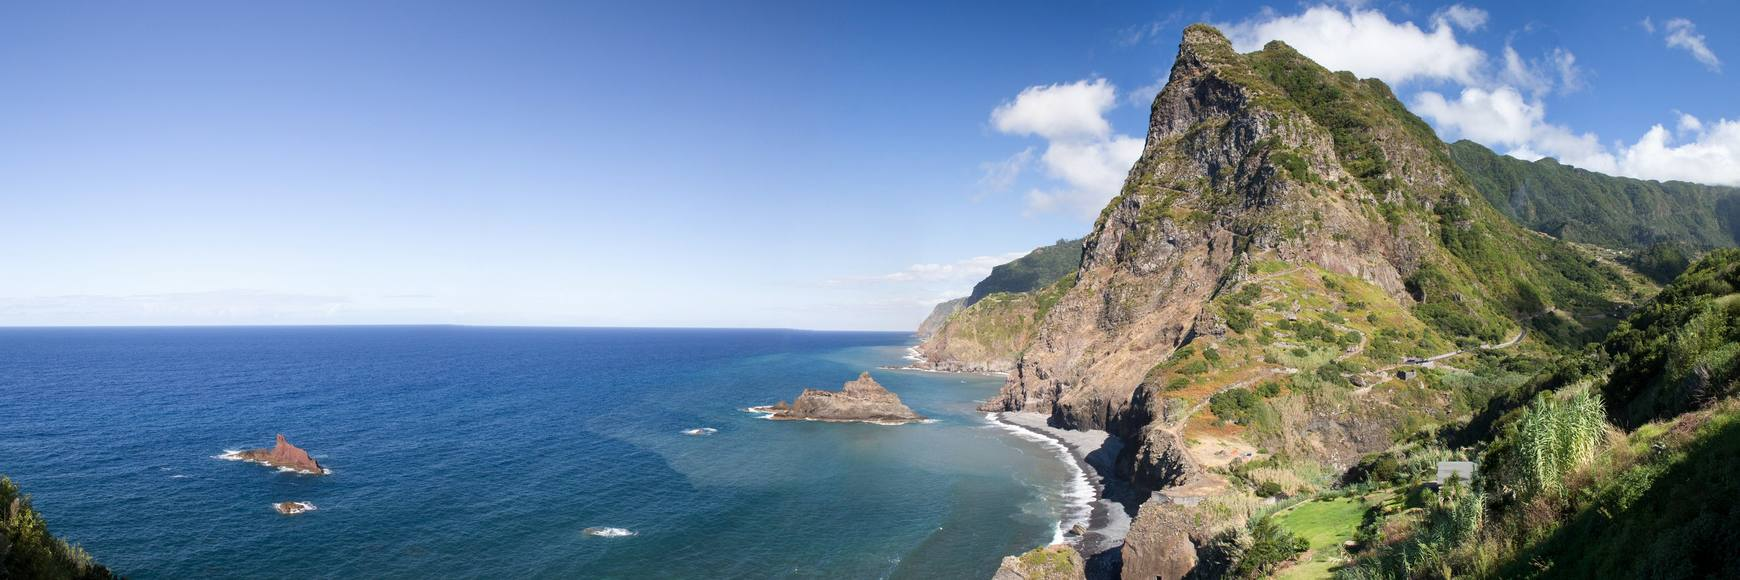 yacht charter Madeira Islands